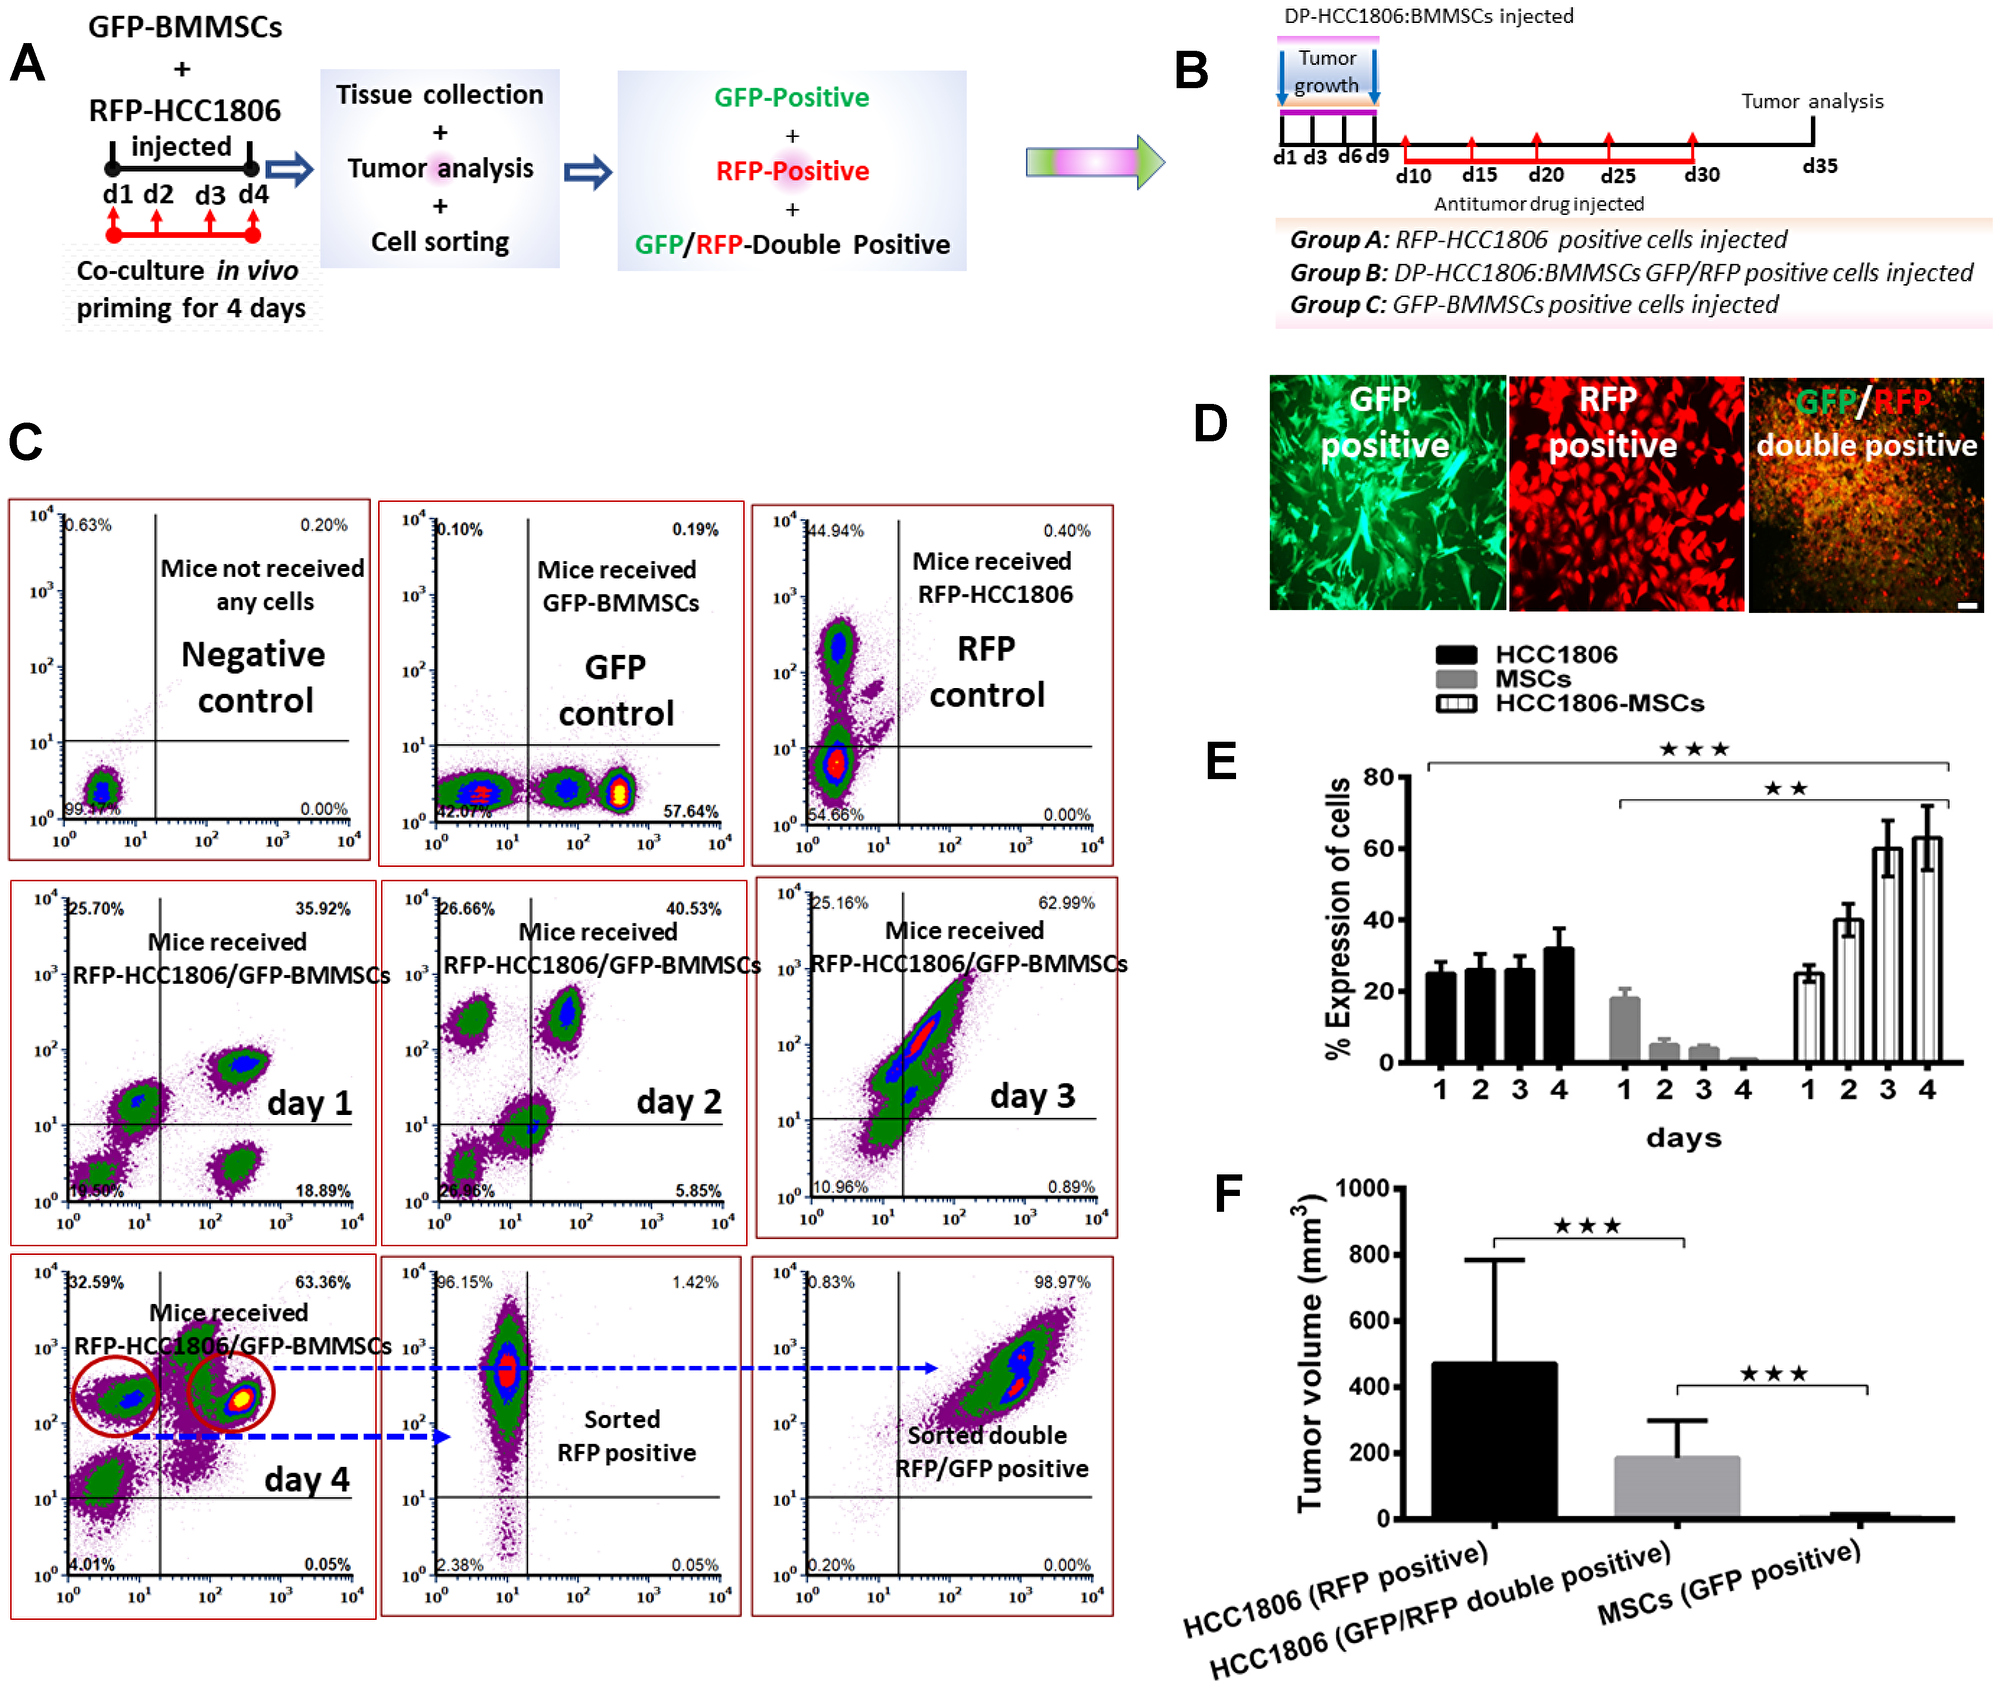 FACS-sorted GFP/RFP-double positive cells from HCC1806:BMMSC xenografts reduced tumor volume in vivo.